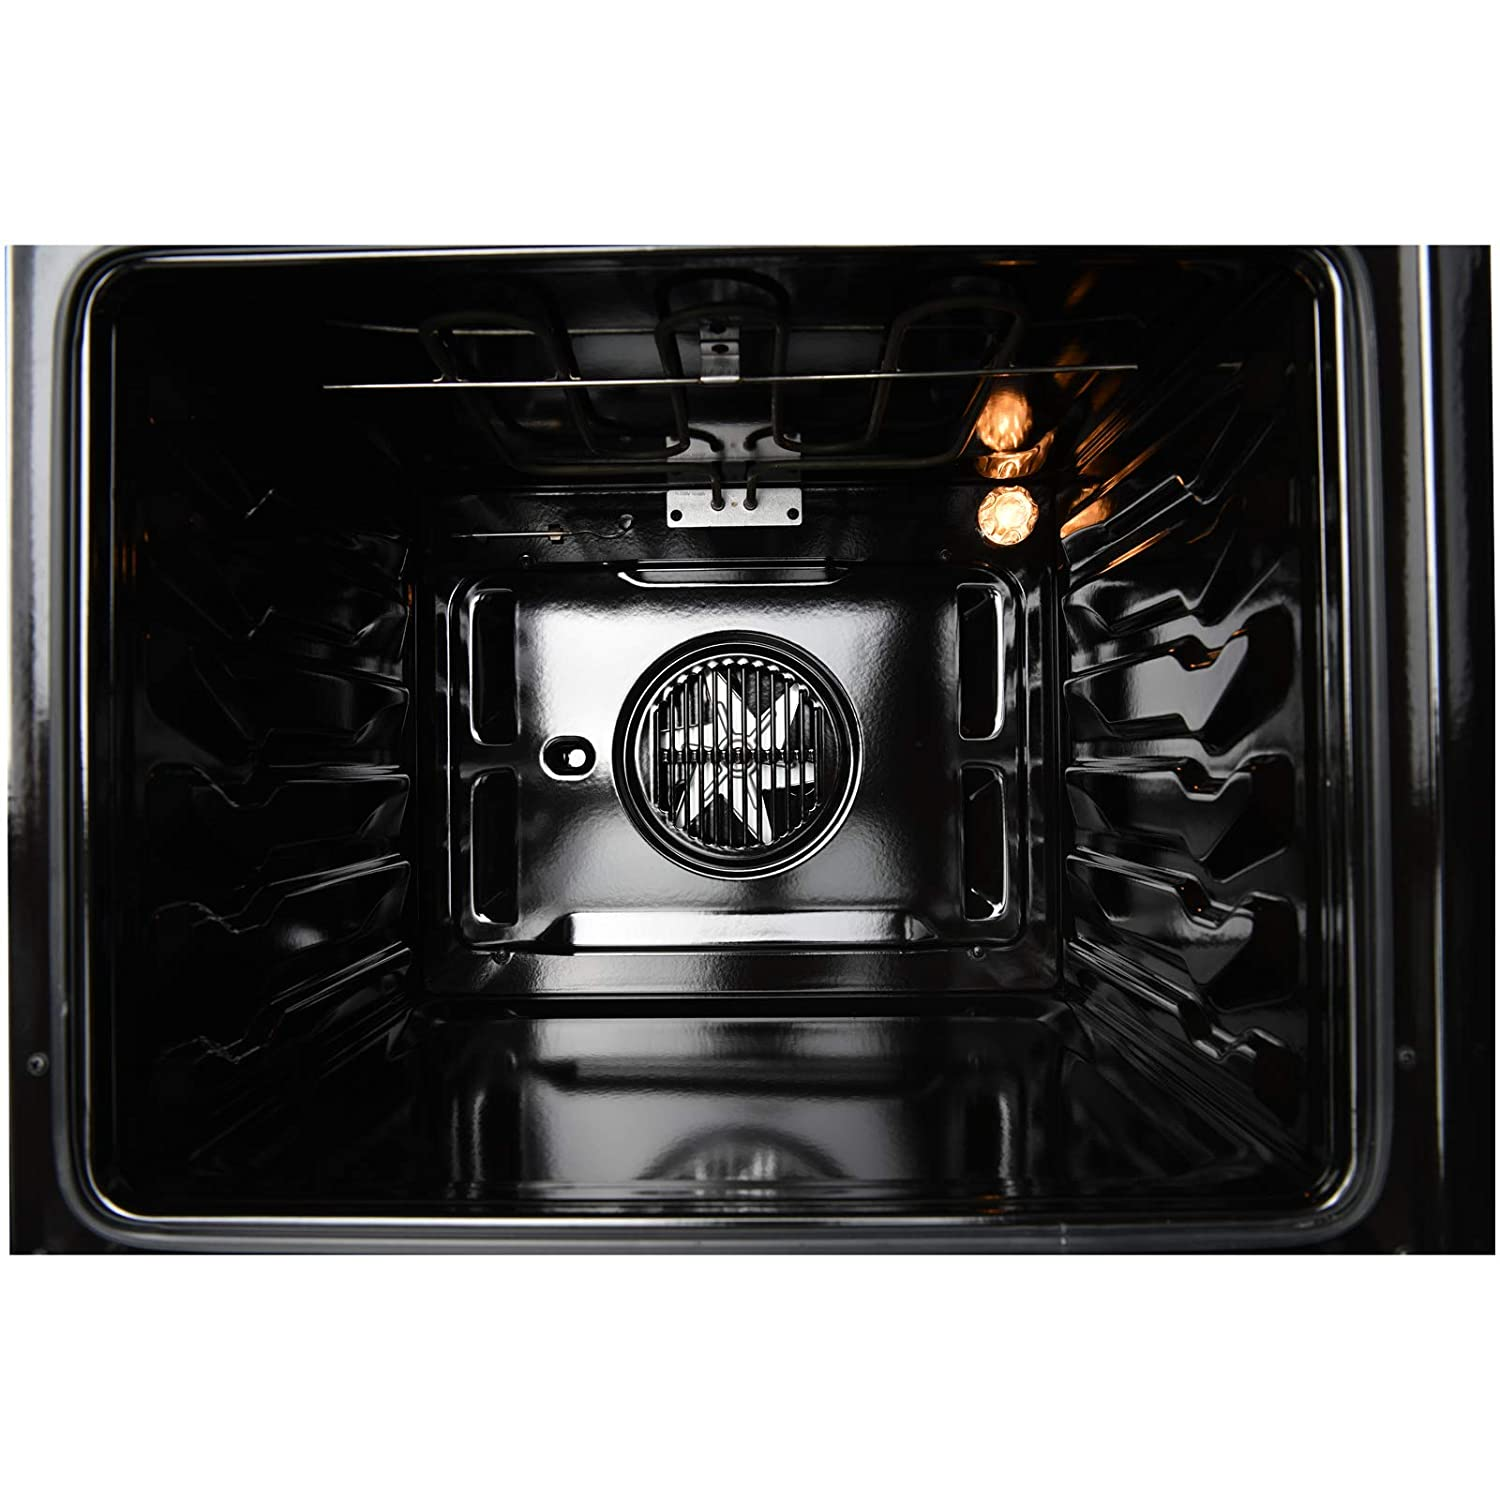 Digital Display Touch Controls KUPPET 24 Electric Single Wall Oven with 10 Functions Built-In or Under-Counter Faster Cooking Convection E750100-H1/ Tempered Glass